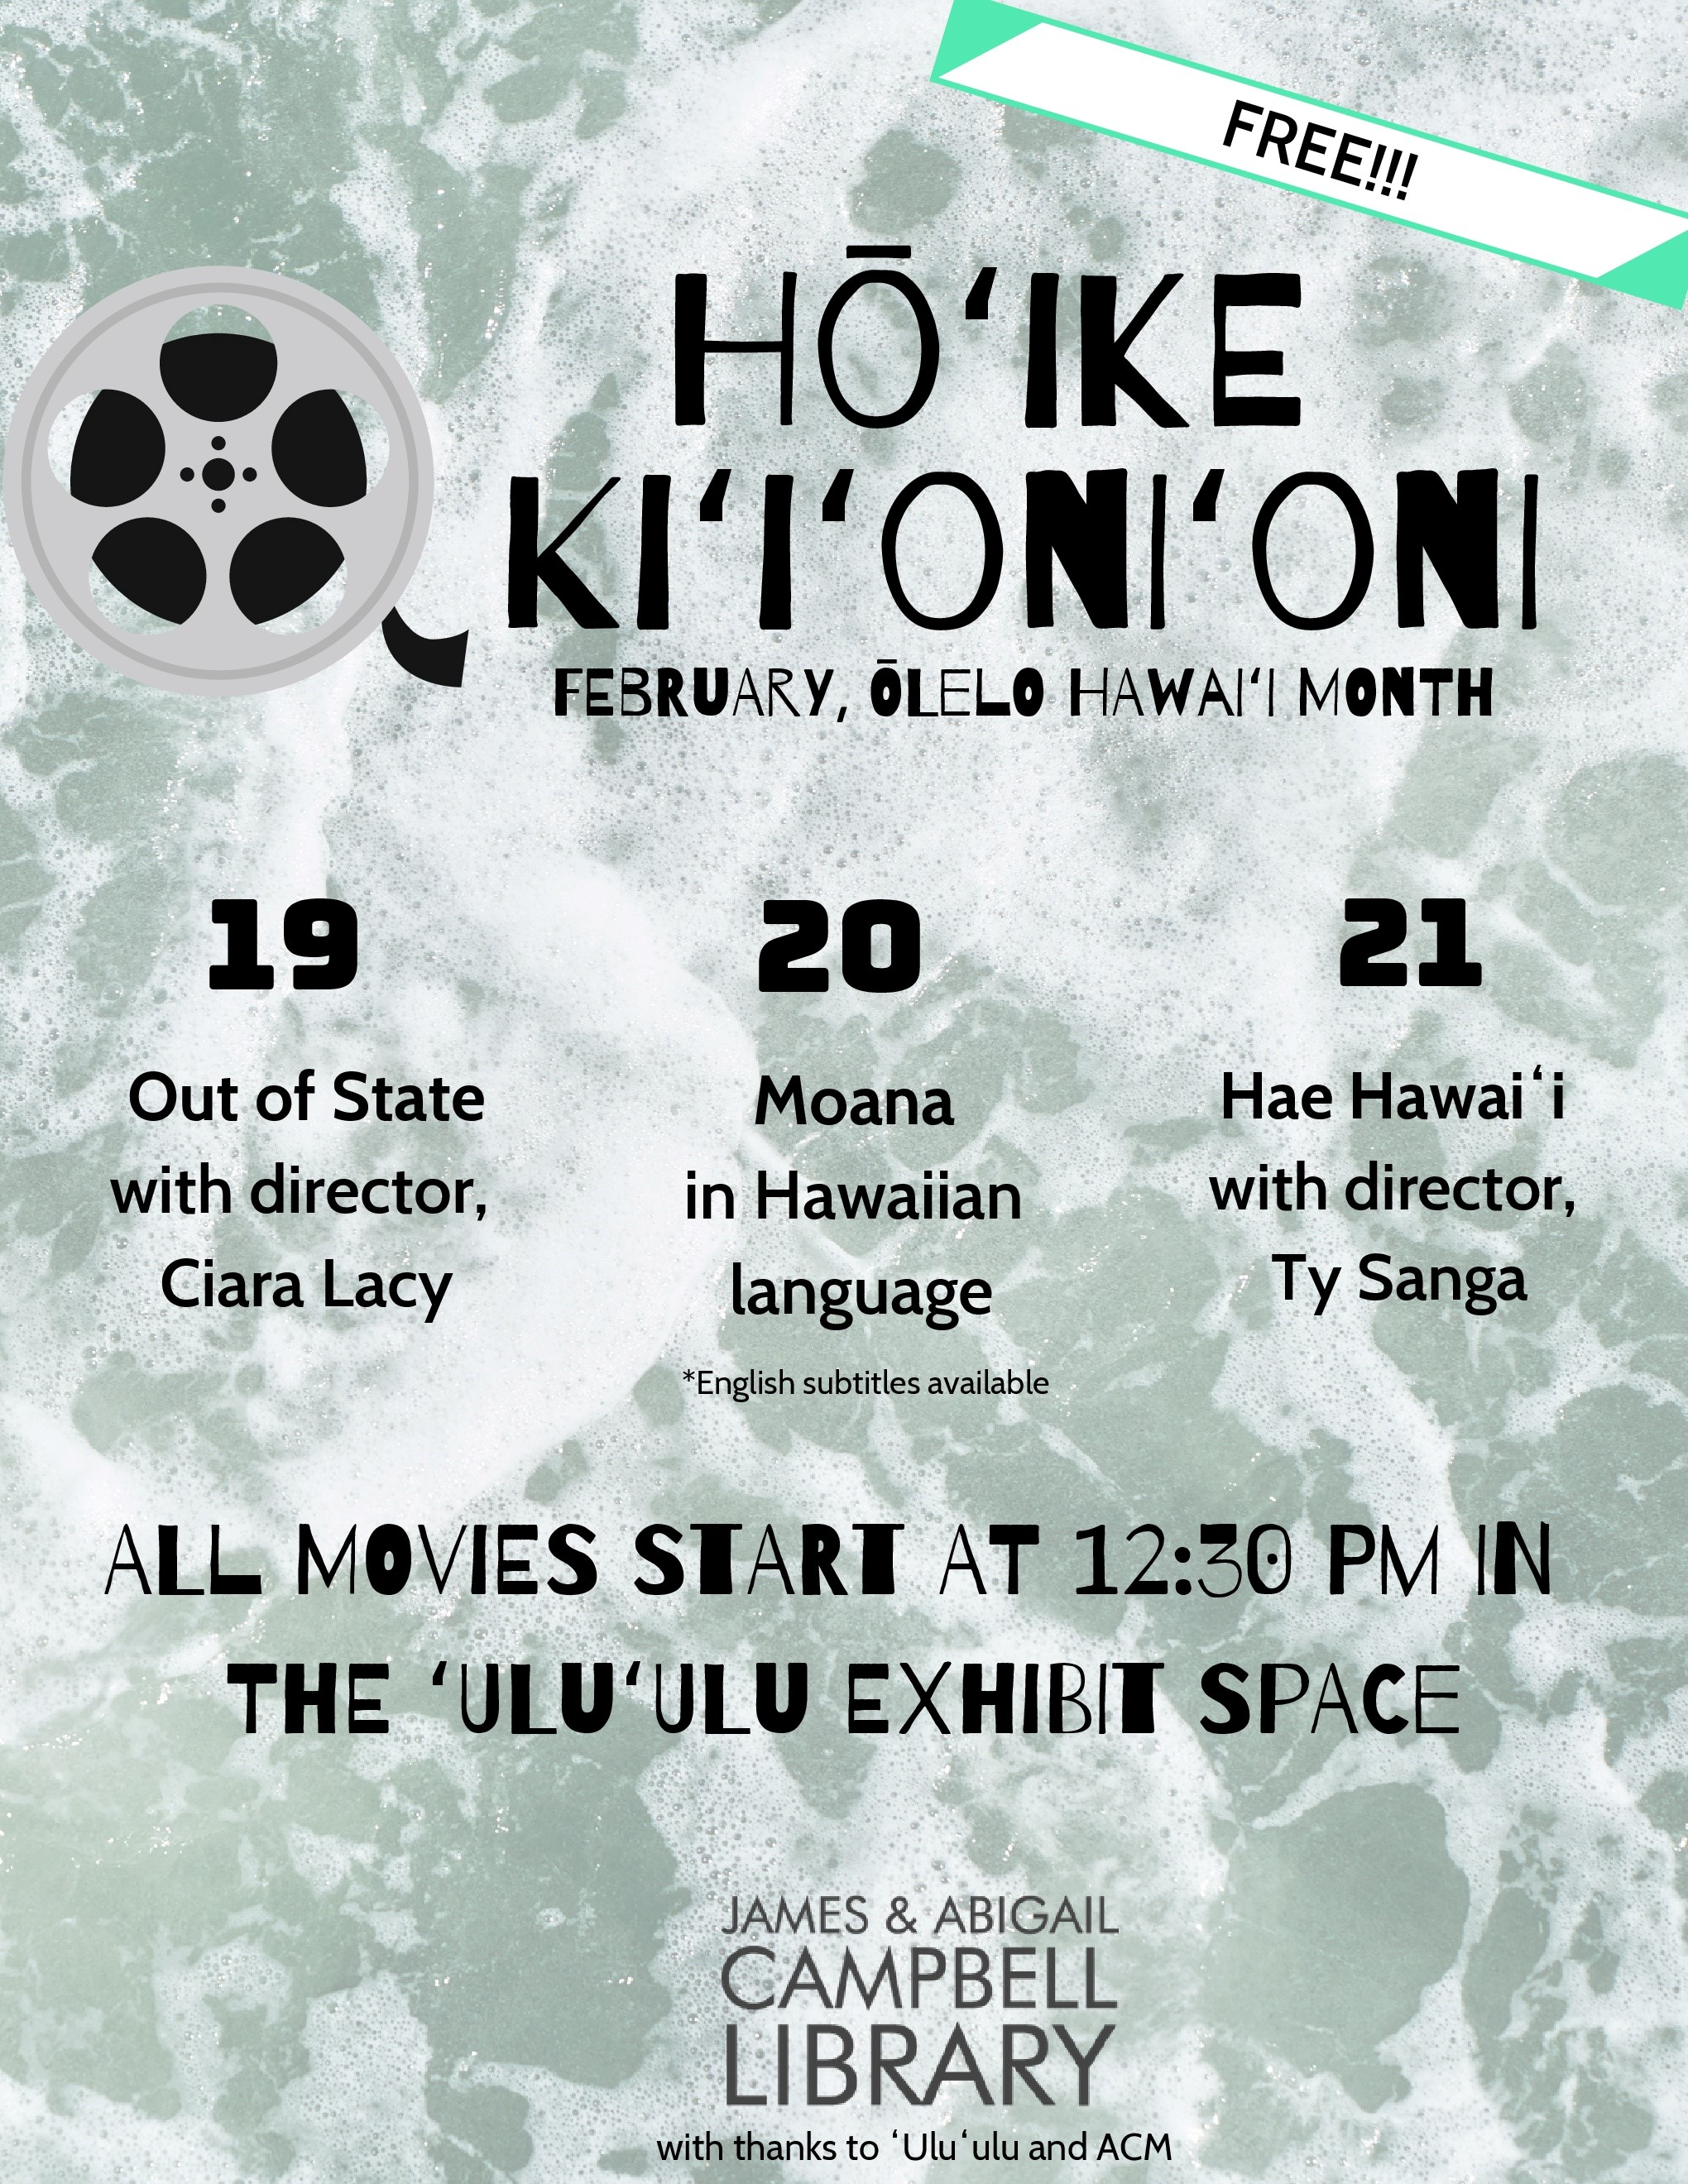 flier for the mini-movie festival with information that's similar to what is contained in the article